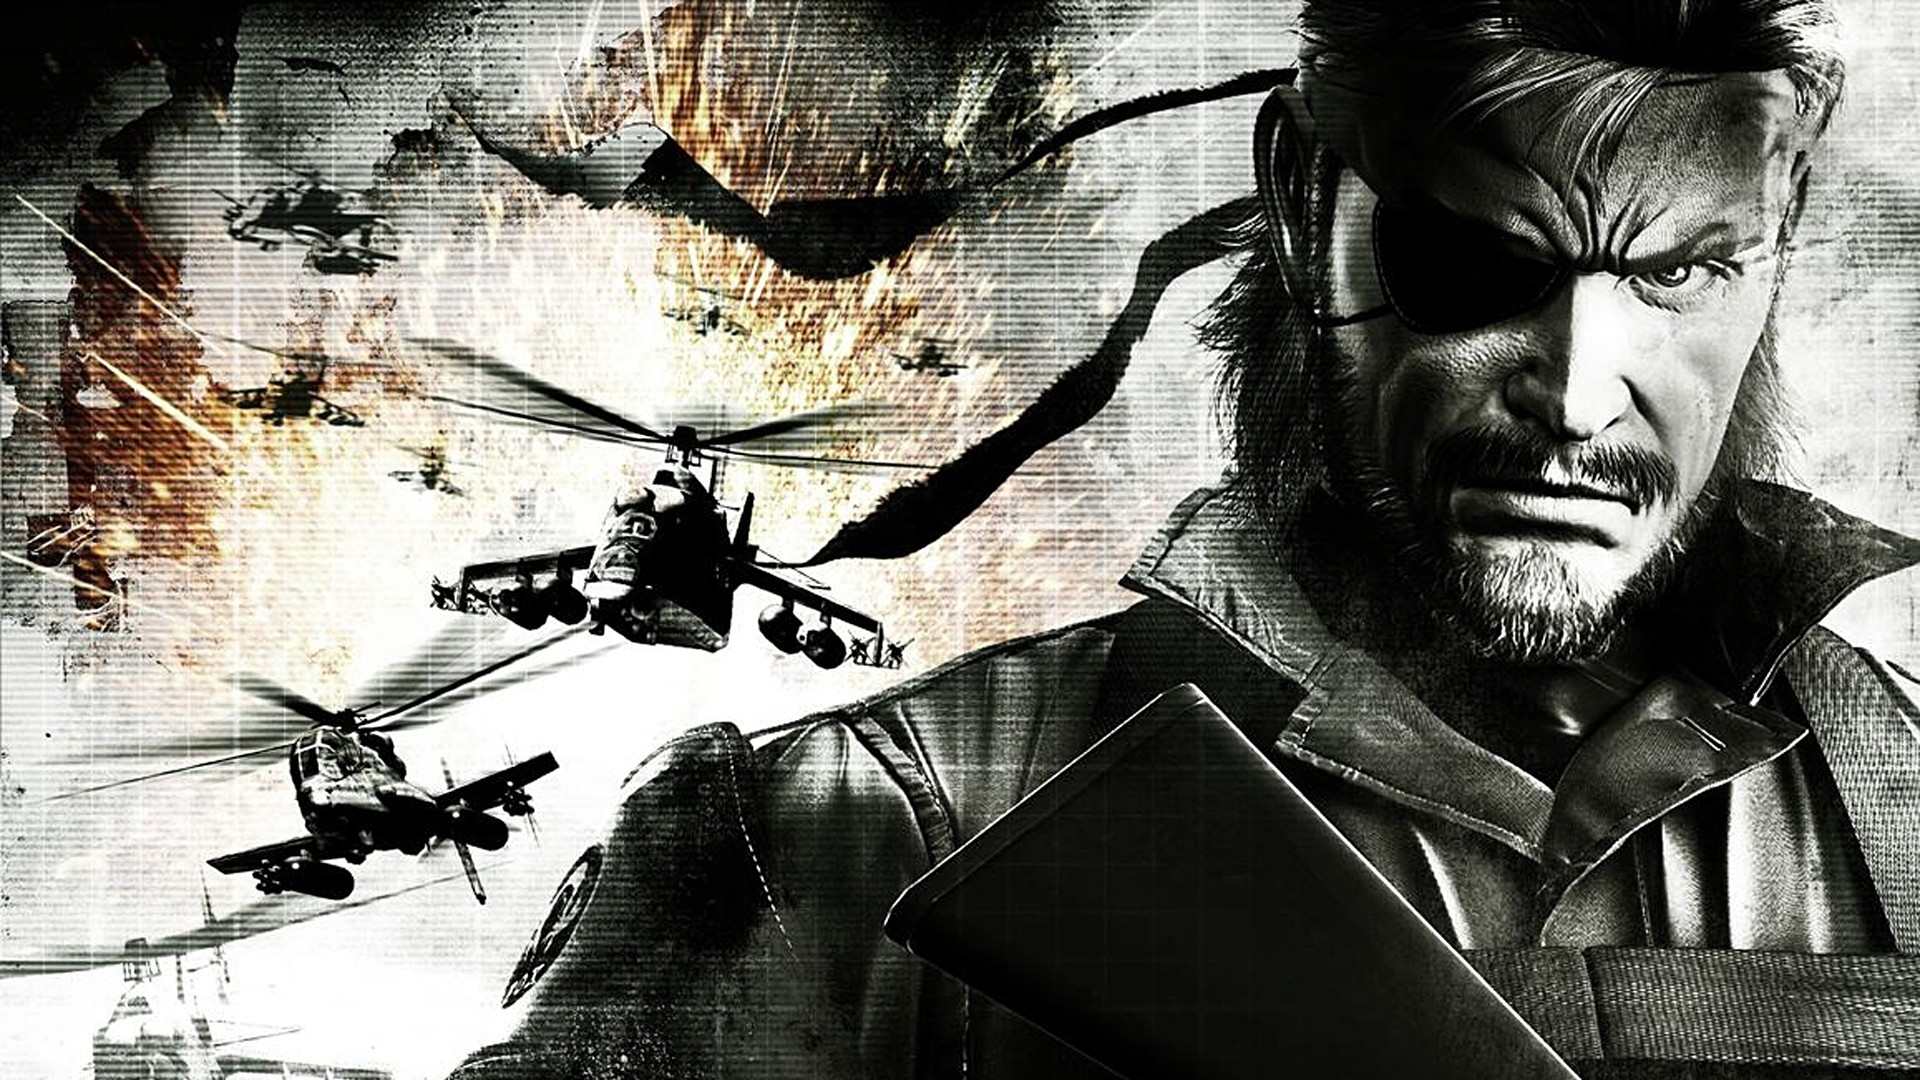 Wallpaper metal gear solid, man, character, helicopters